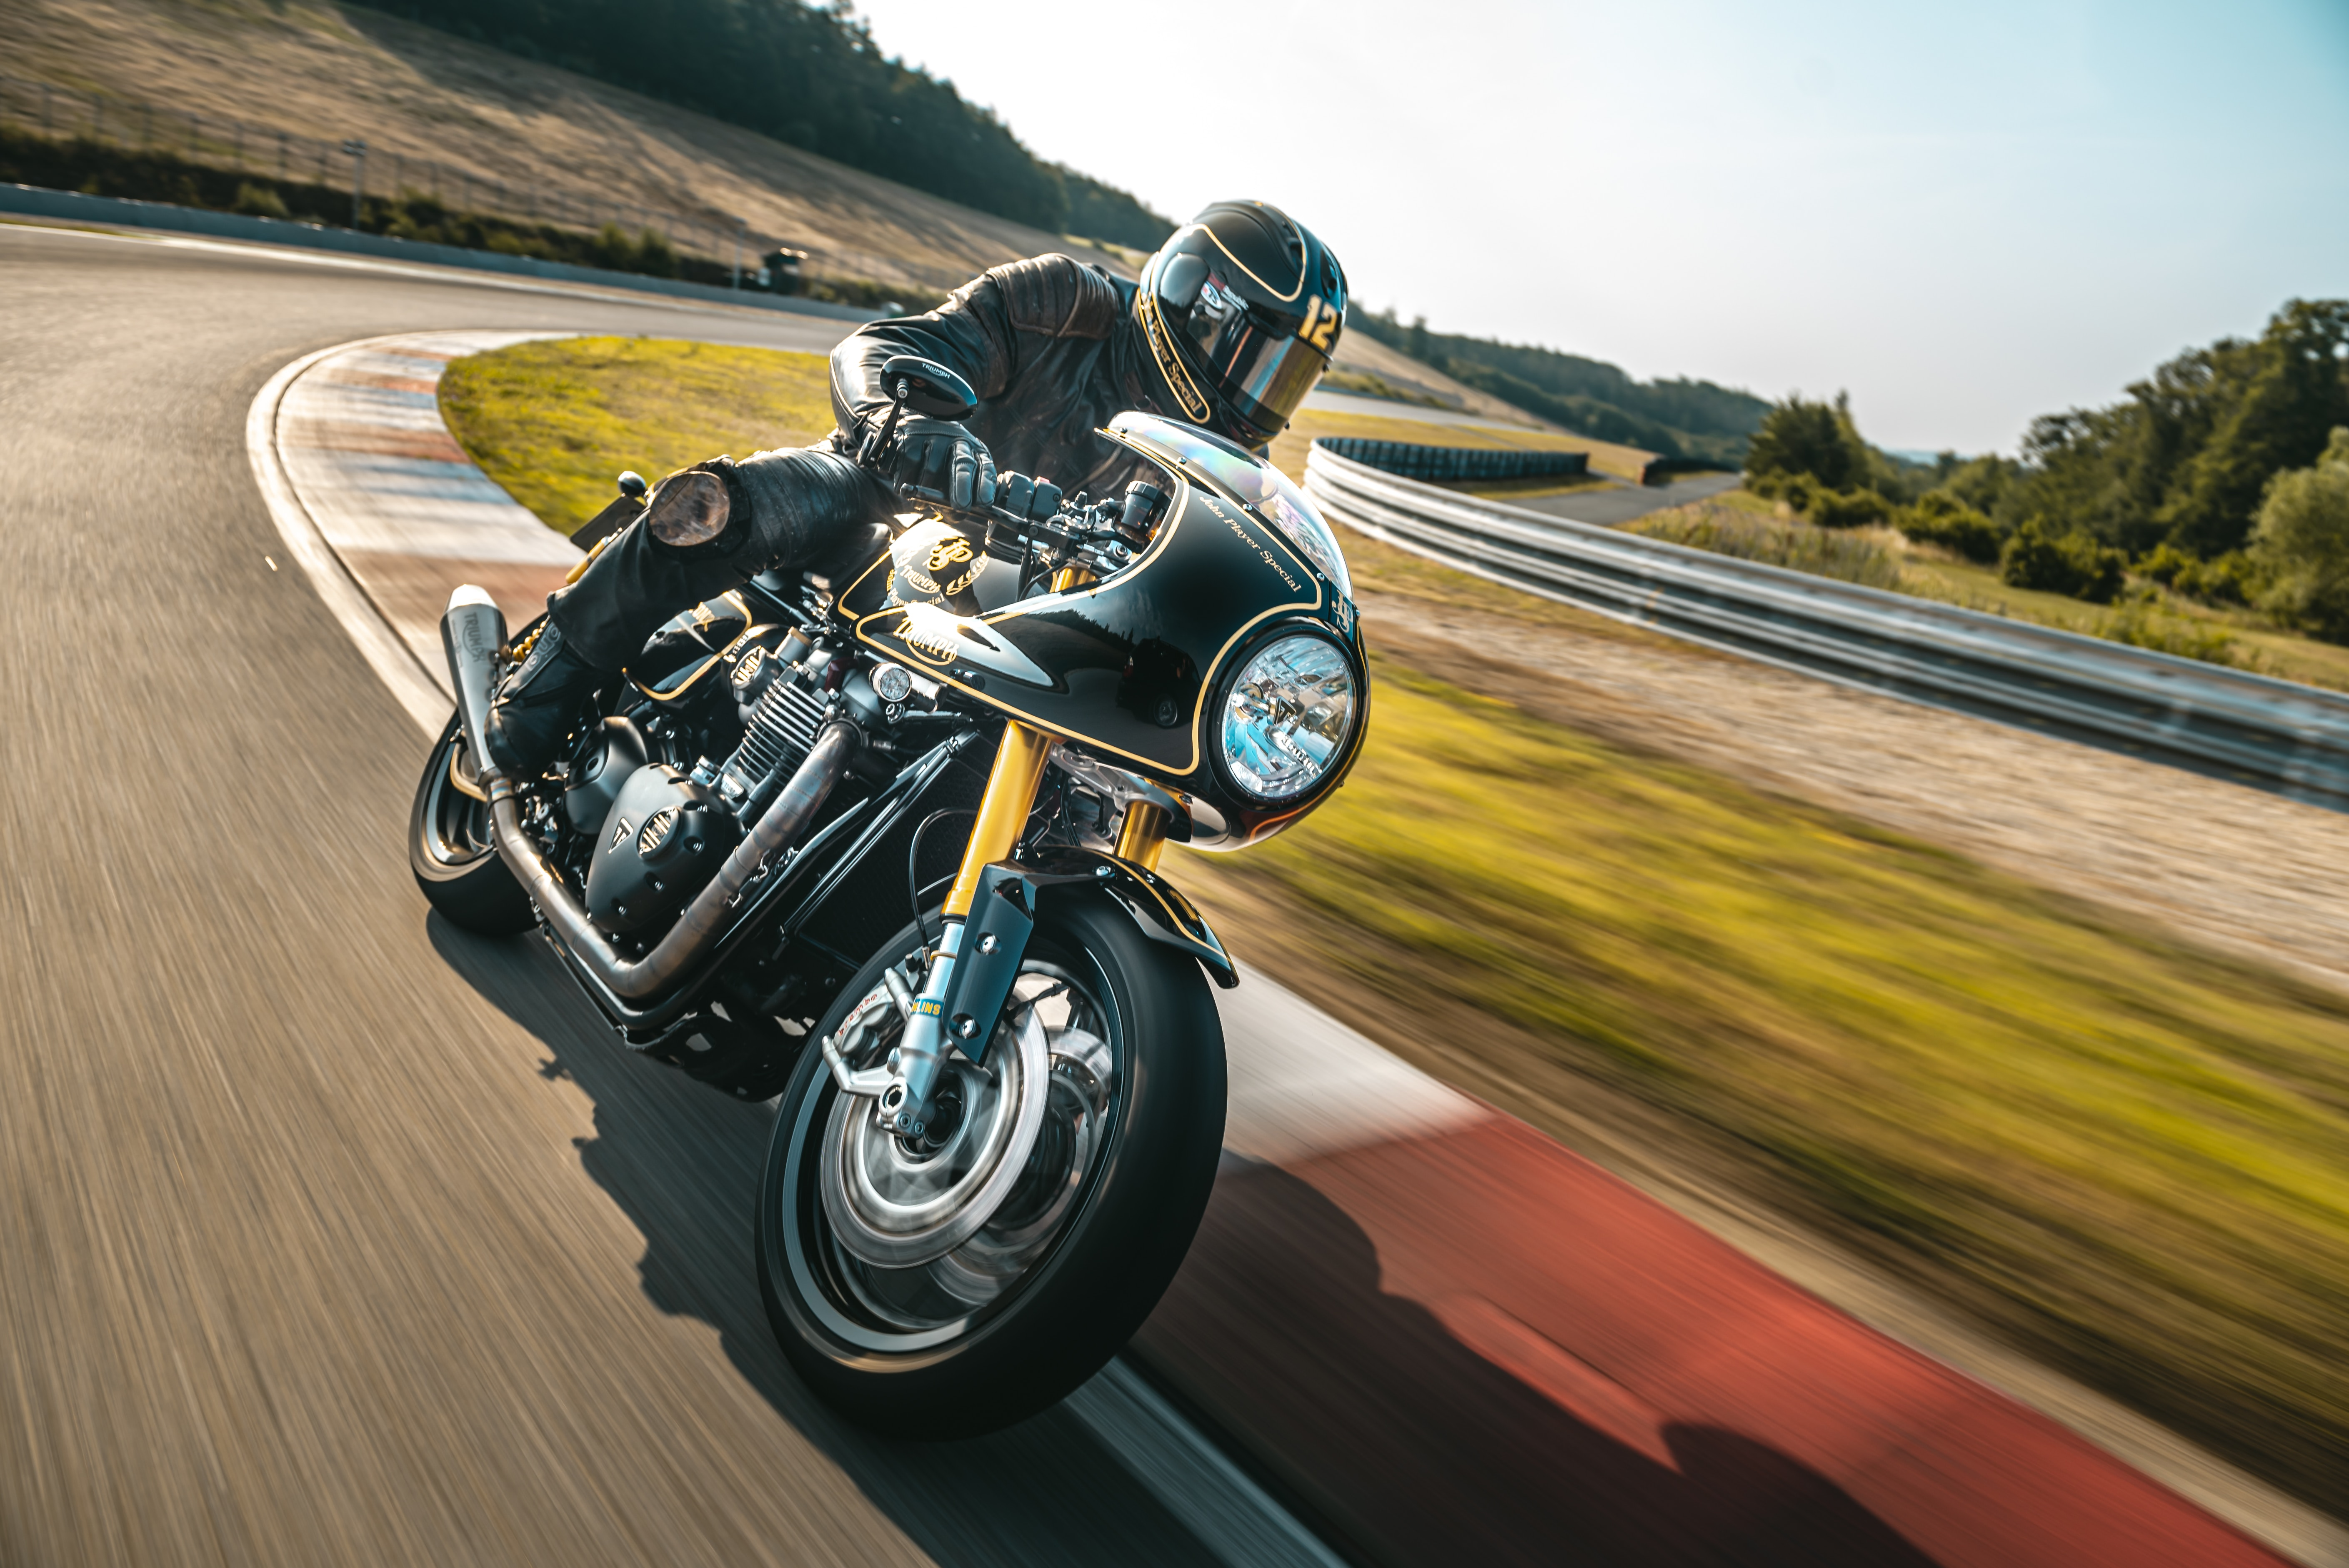 How can I be a safe motorcyclist?